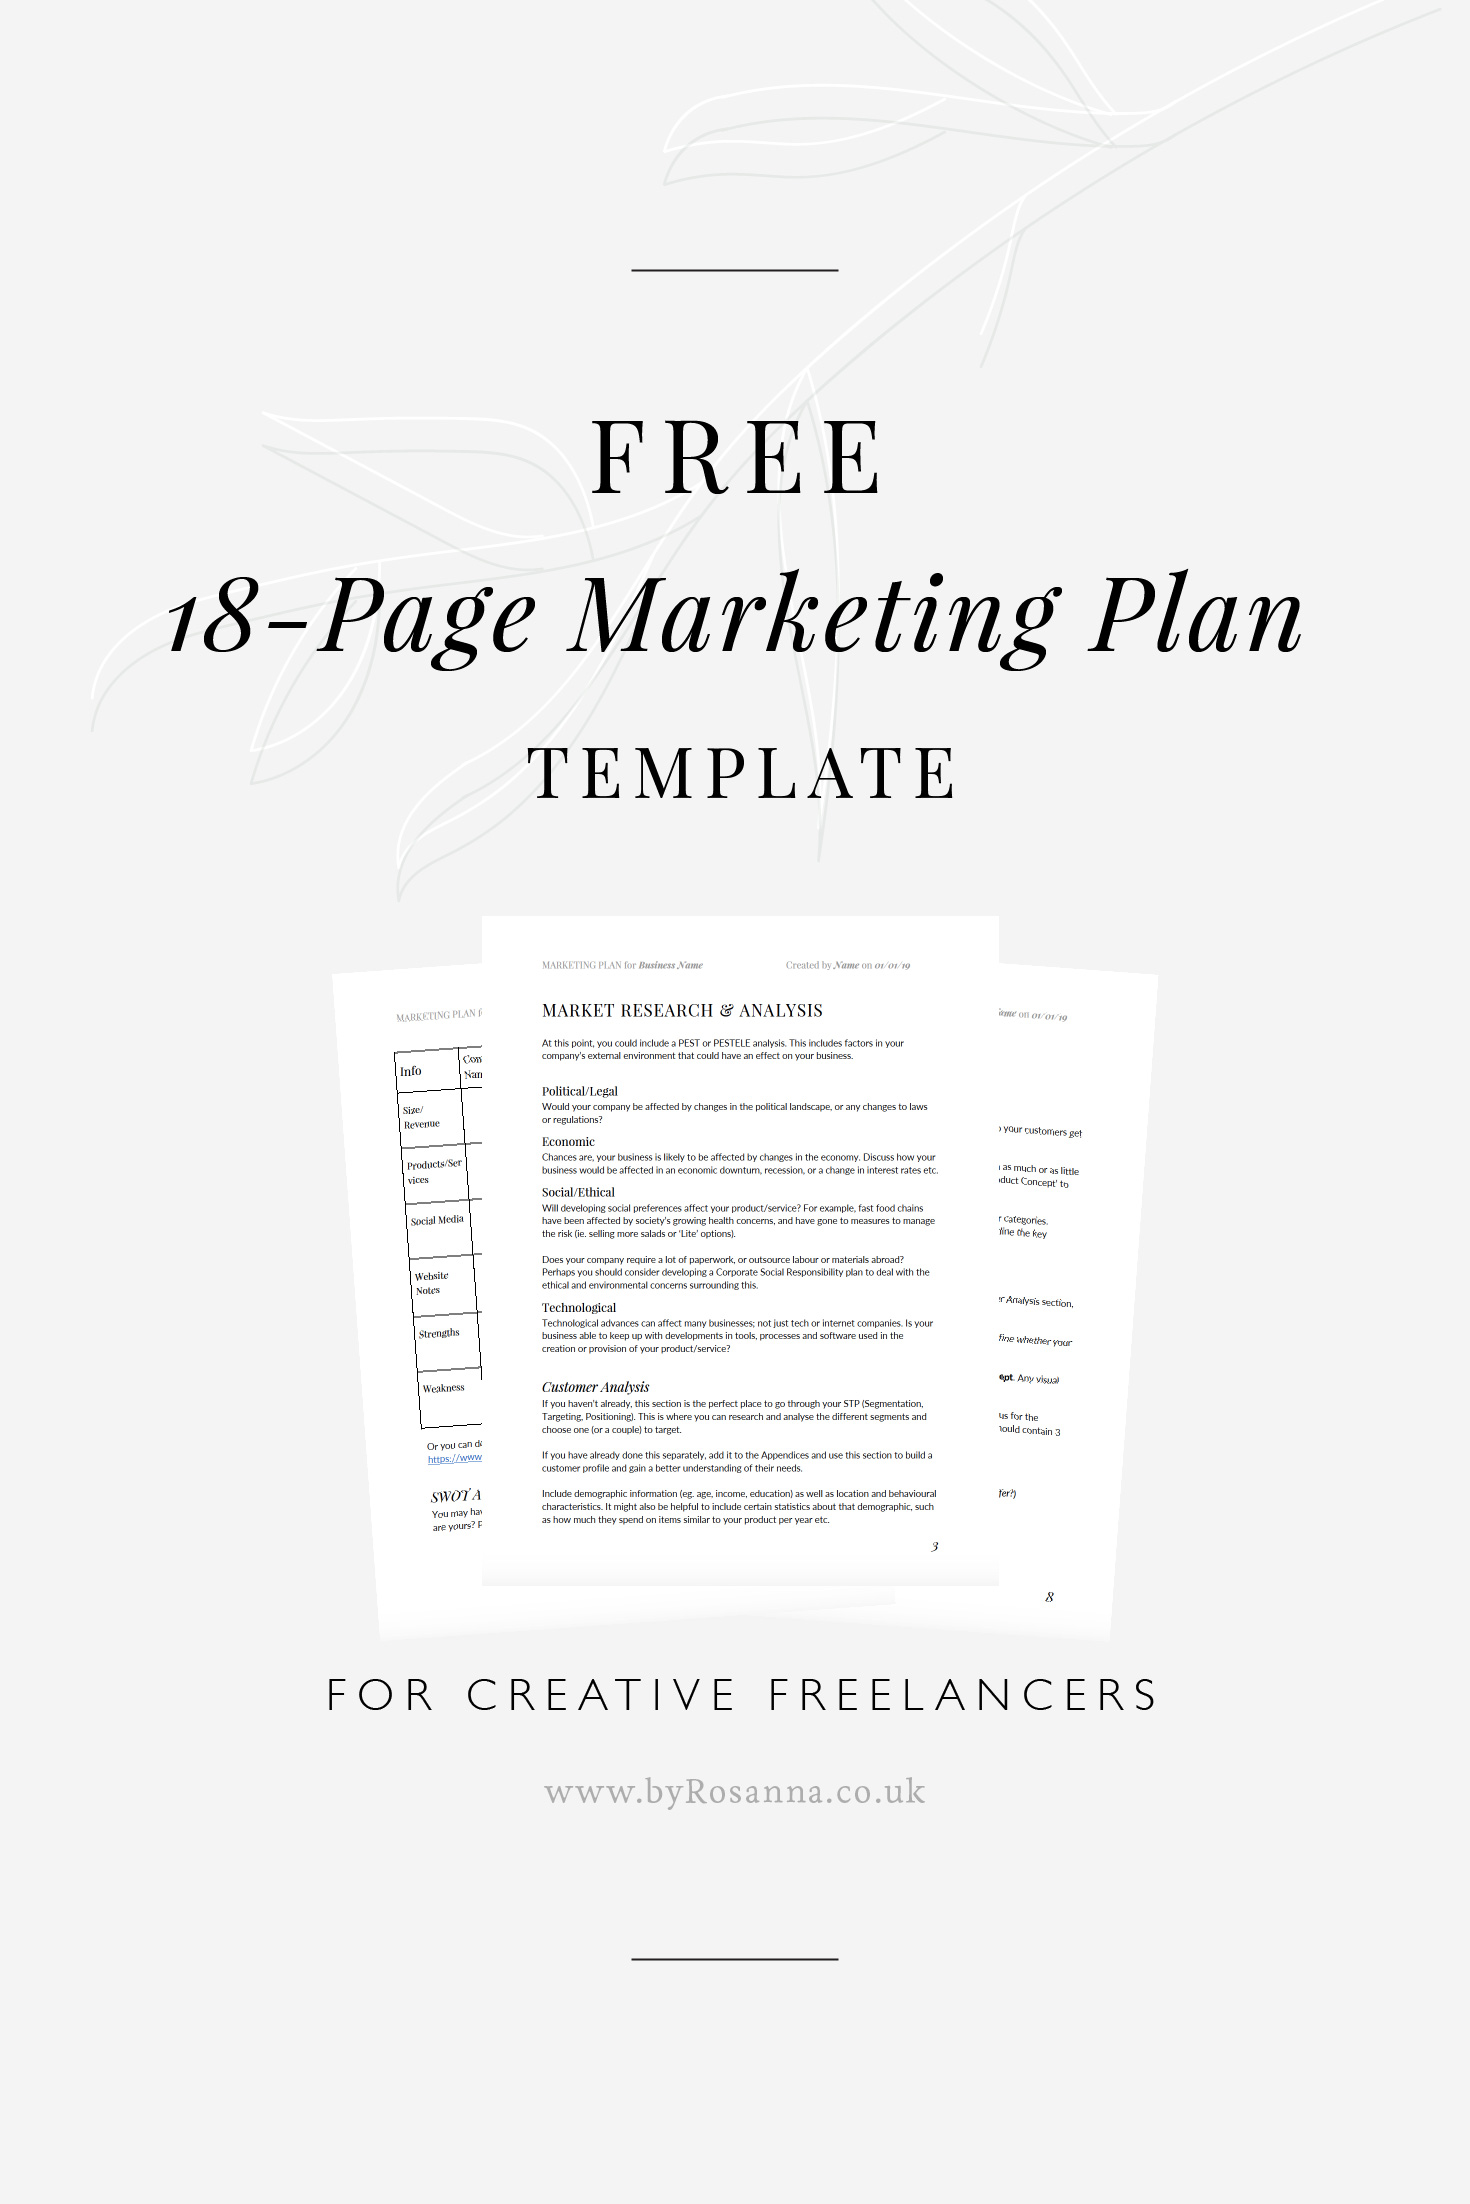 FREE Marketing Template with 19 pages, available to download and use for creative freelancers and small businesses #marketingplan #marketingstrategy #socialmediamarketing